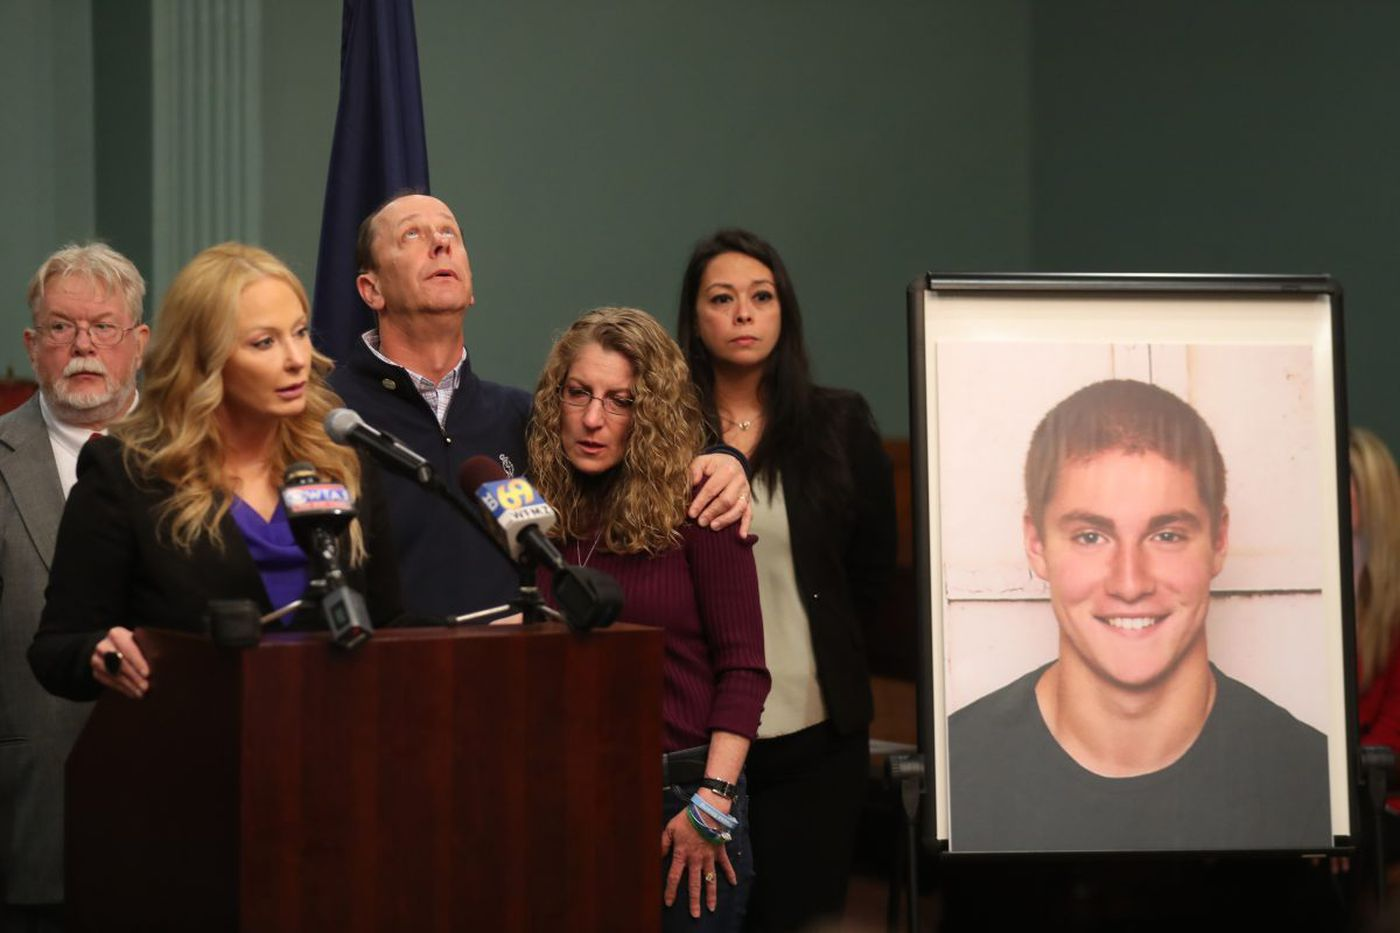 Grand jury report: Penn State failed to properly monitor frats, hazing